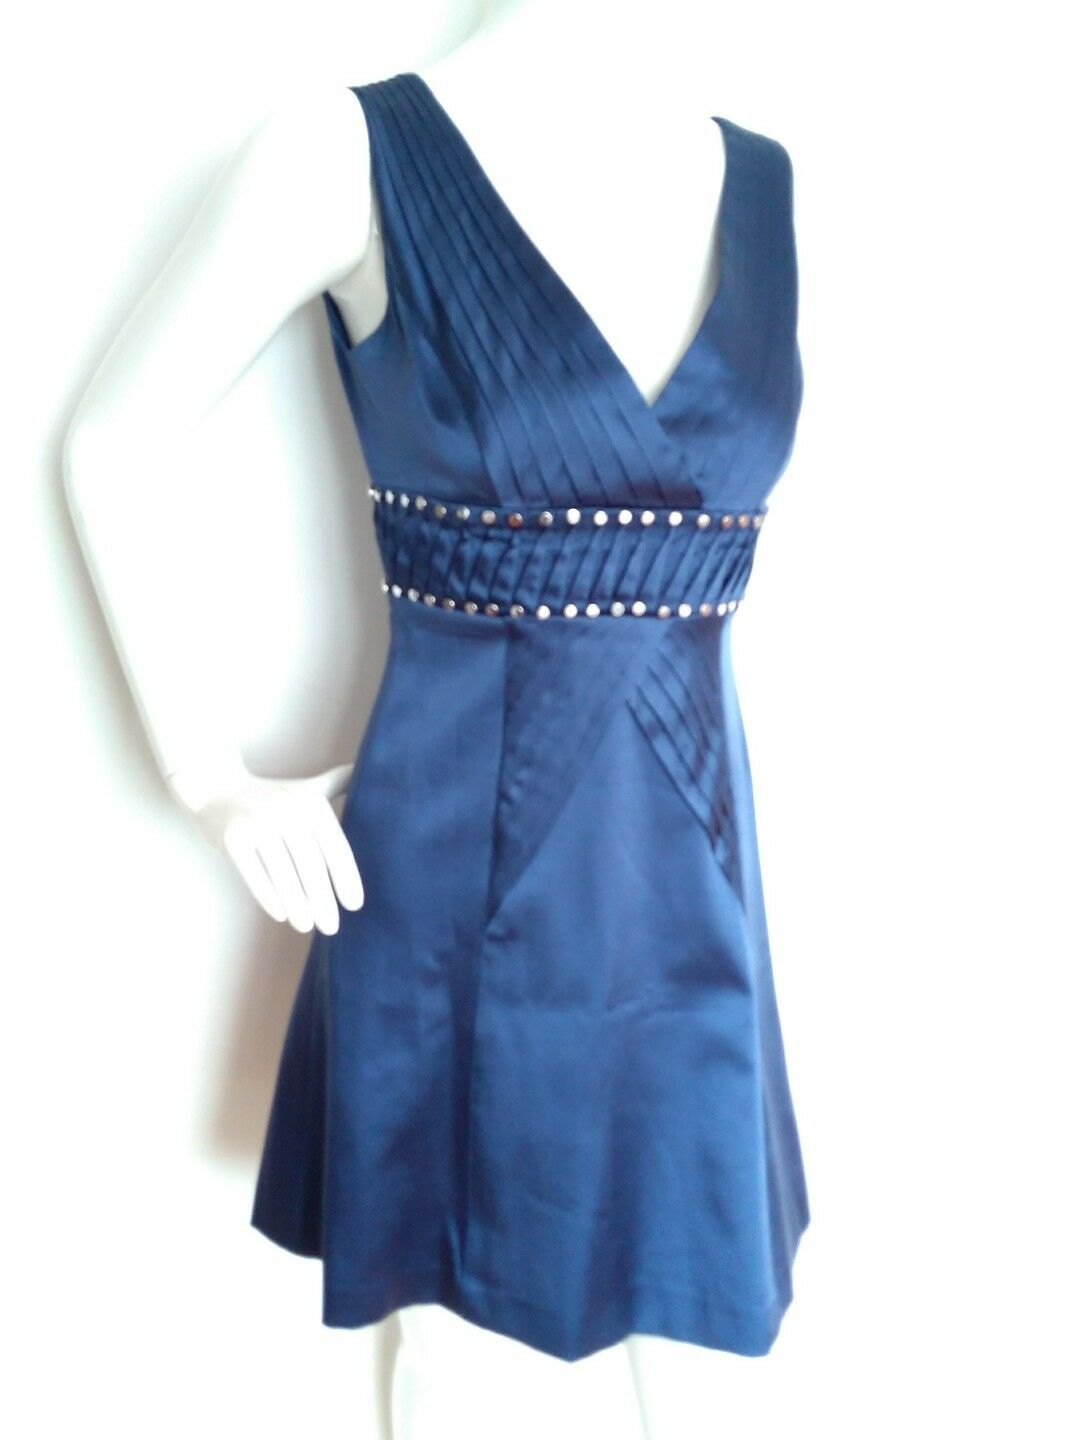 Designer KAREN MILLEN  silk dress Größe 10 --BRAND NEW-- studded jet Blau